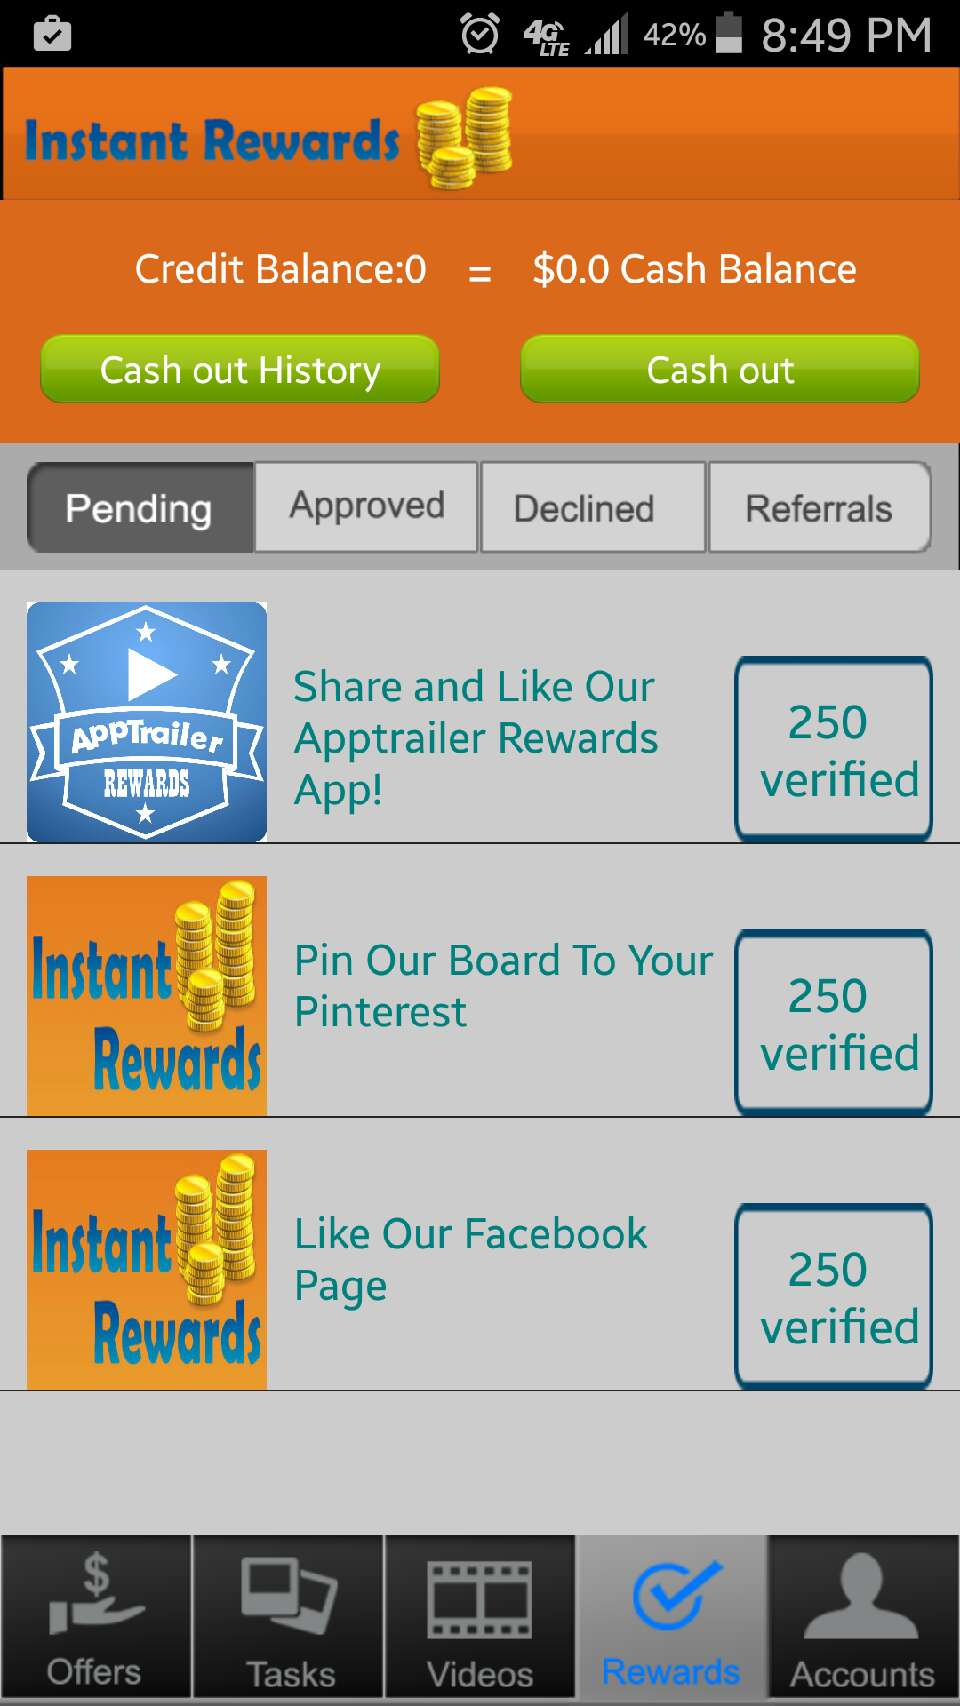 Still pending rewards but the rewards I've done are so simple! Why not make a few simple bucks?